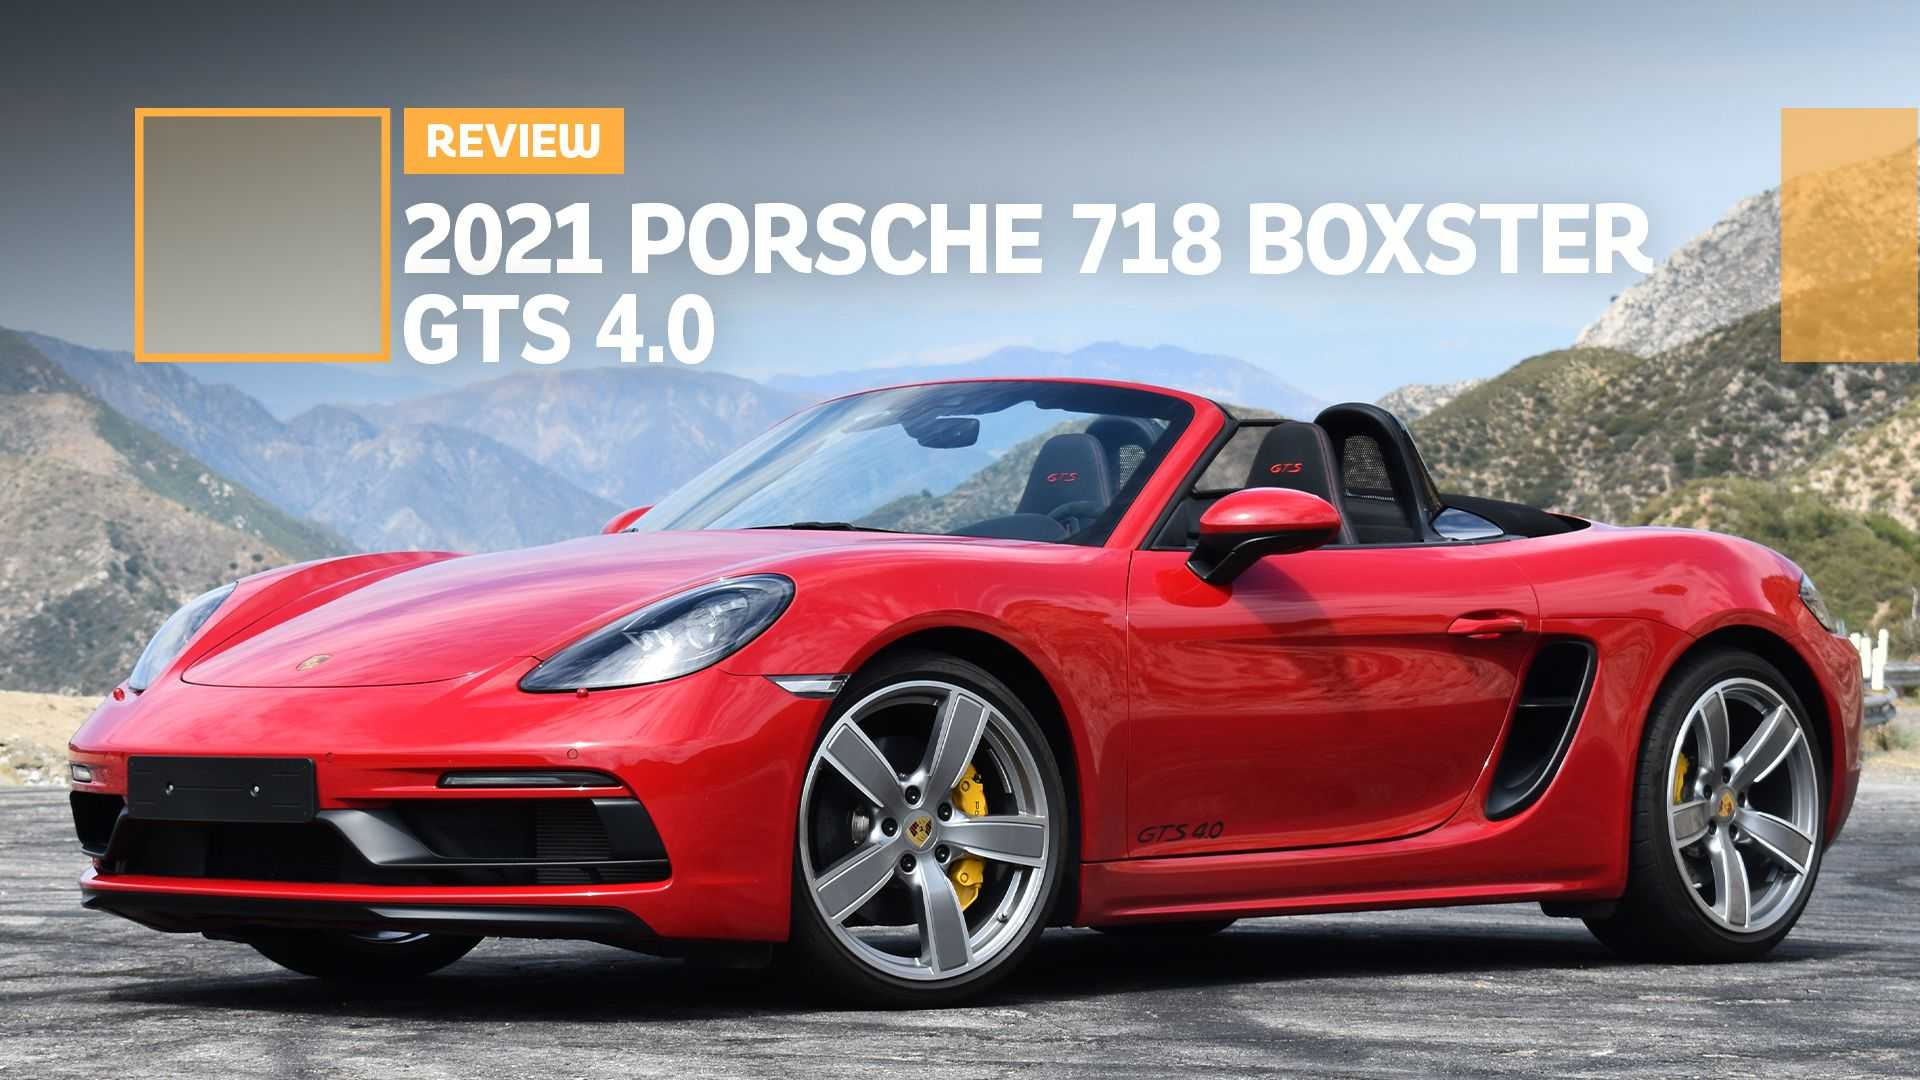 photo of 2021 Porsche 718 Boxster GTS 4.0 Review: Distilled Spirits image